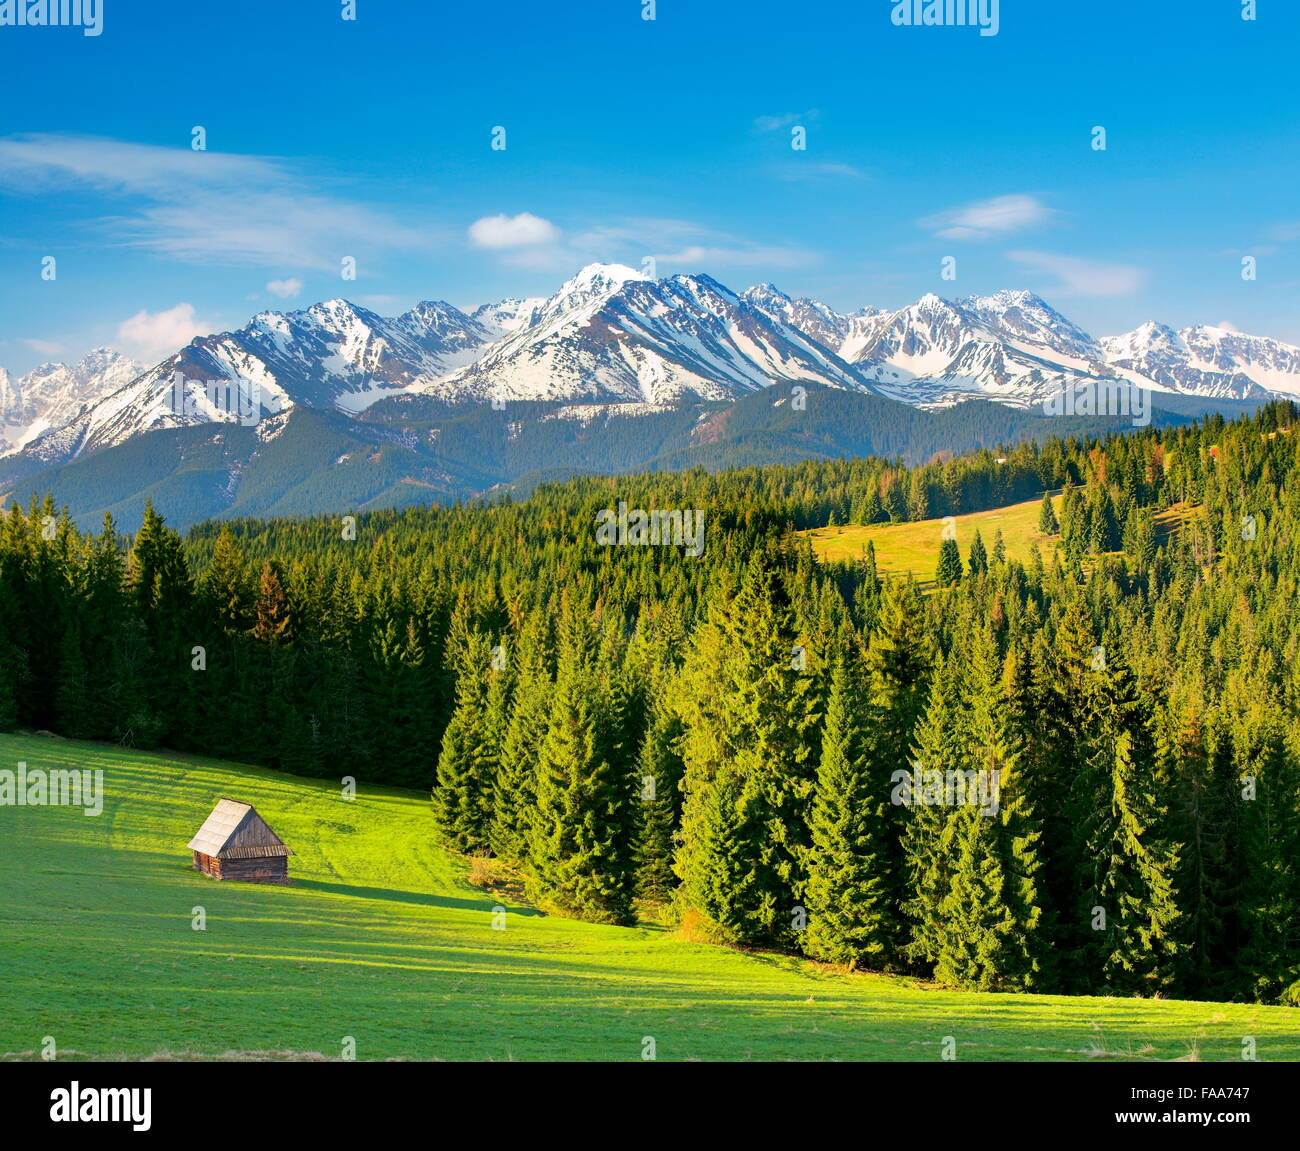 Szymkowka,Glade Tatras, Pologne Photo Stock